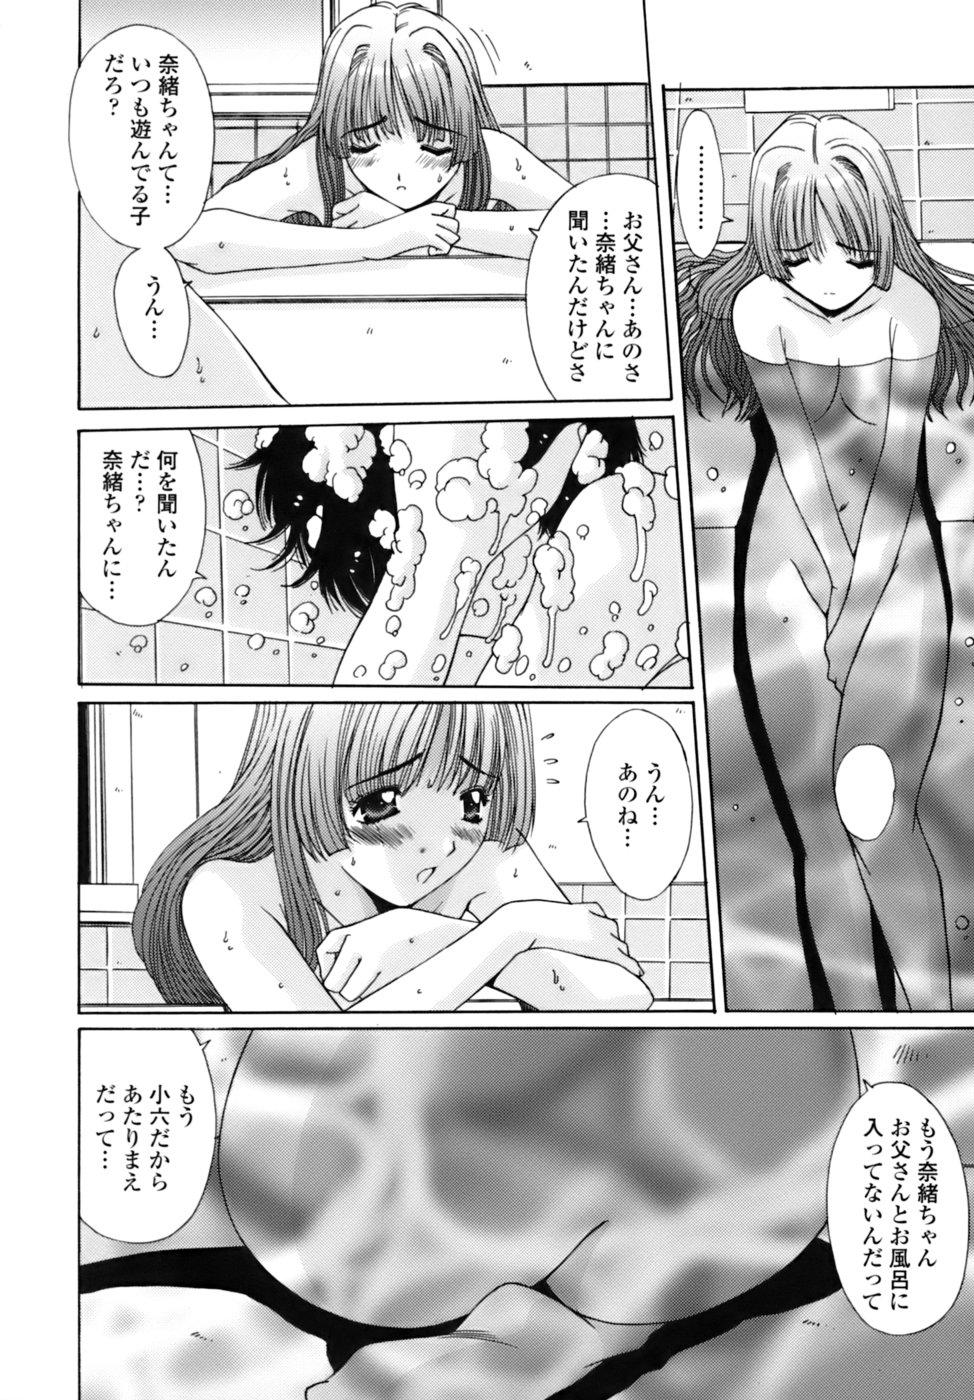 Sange No Koku - At the Time of Scattering Flowers 105